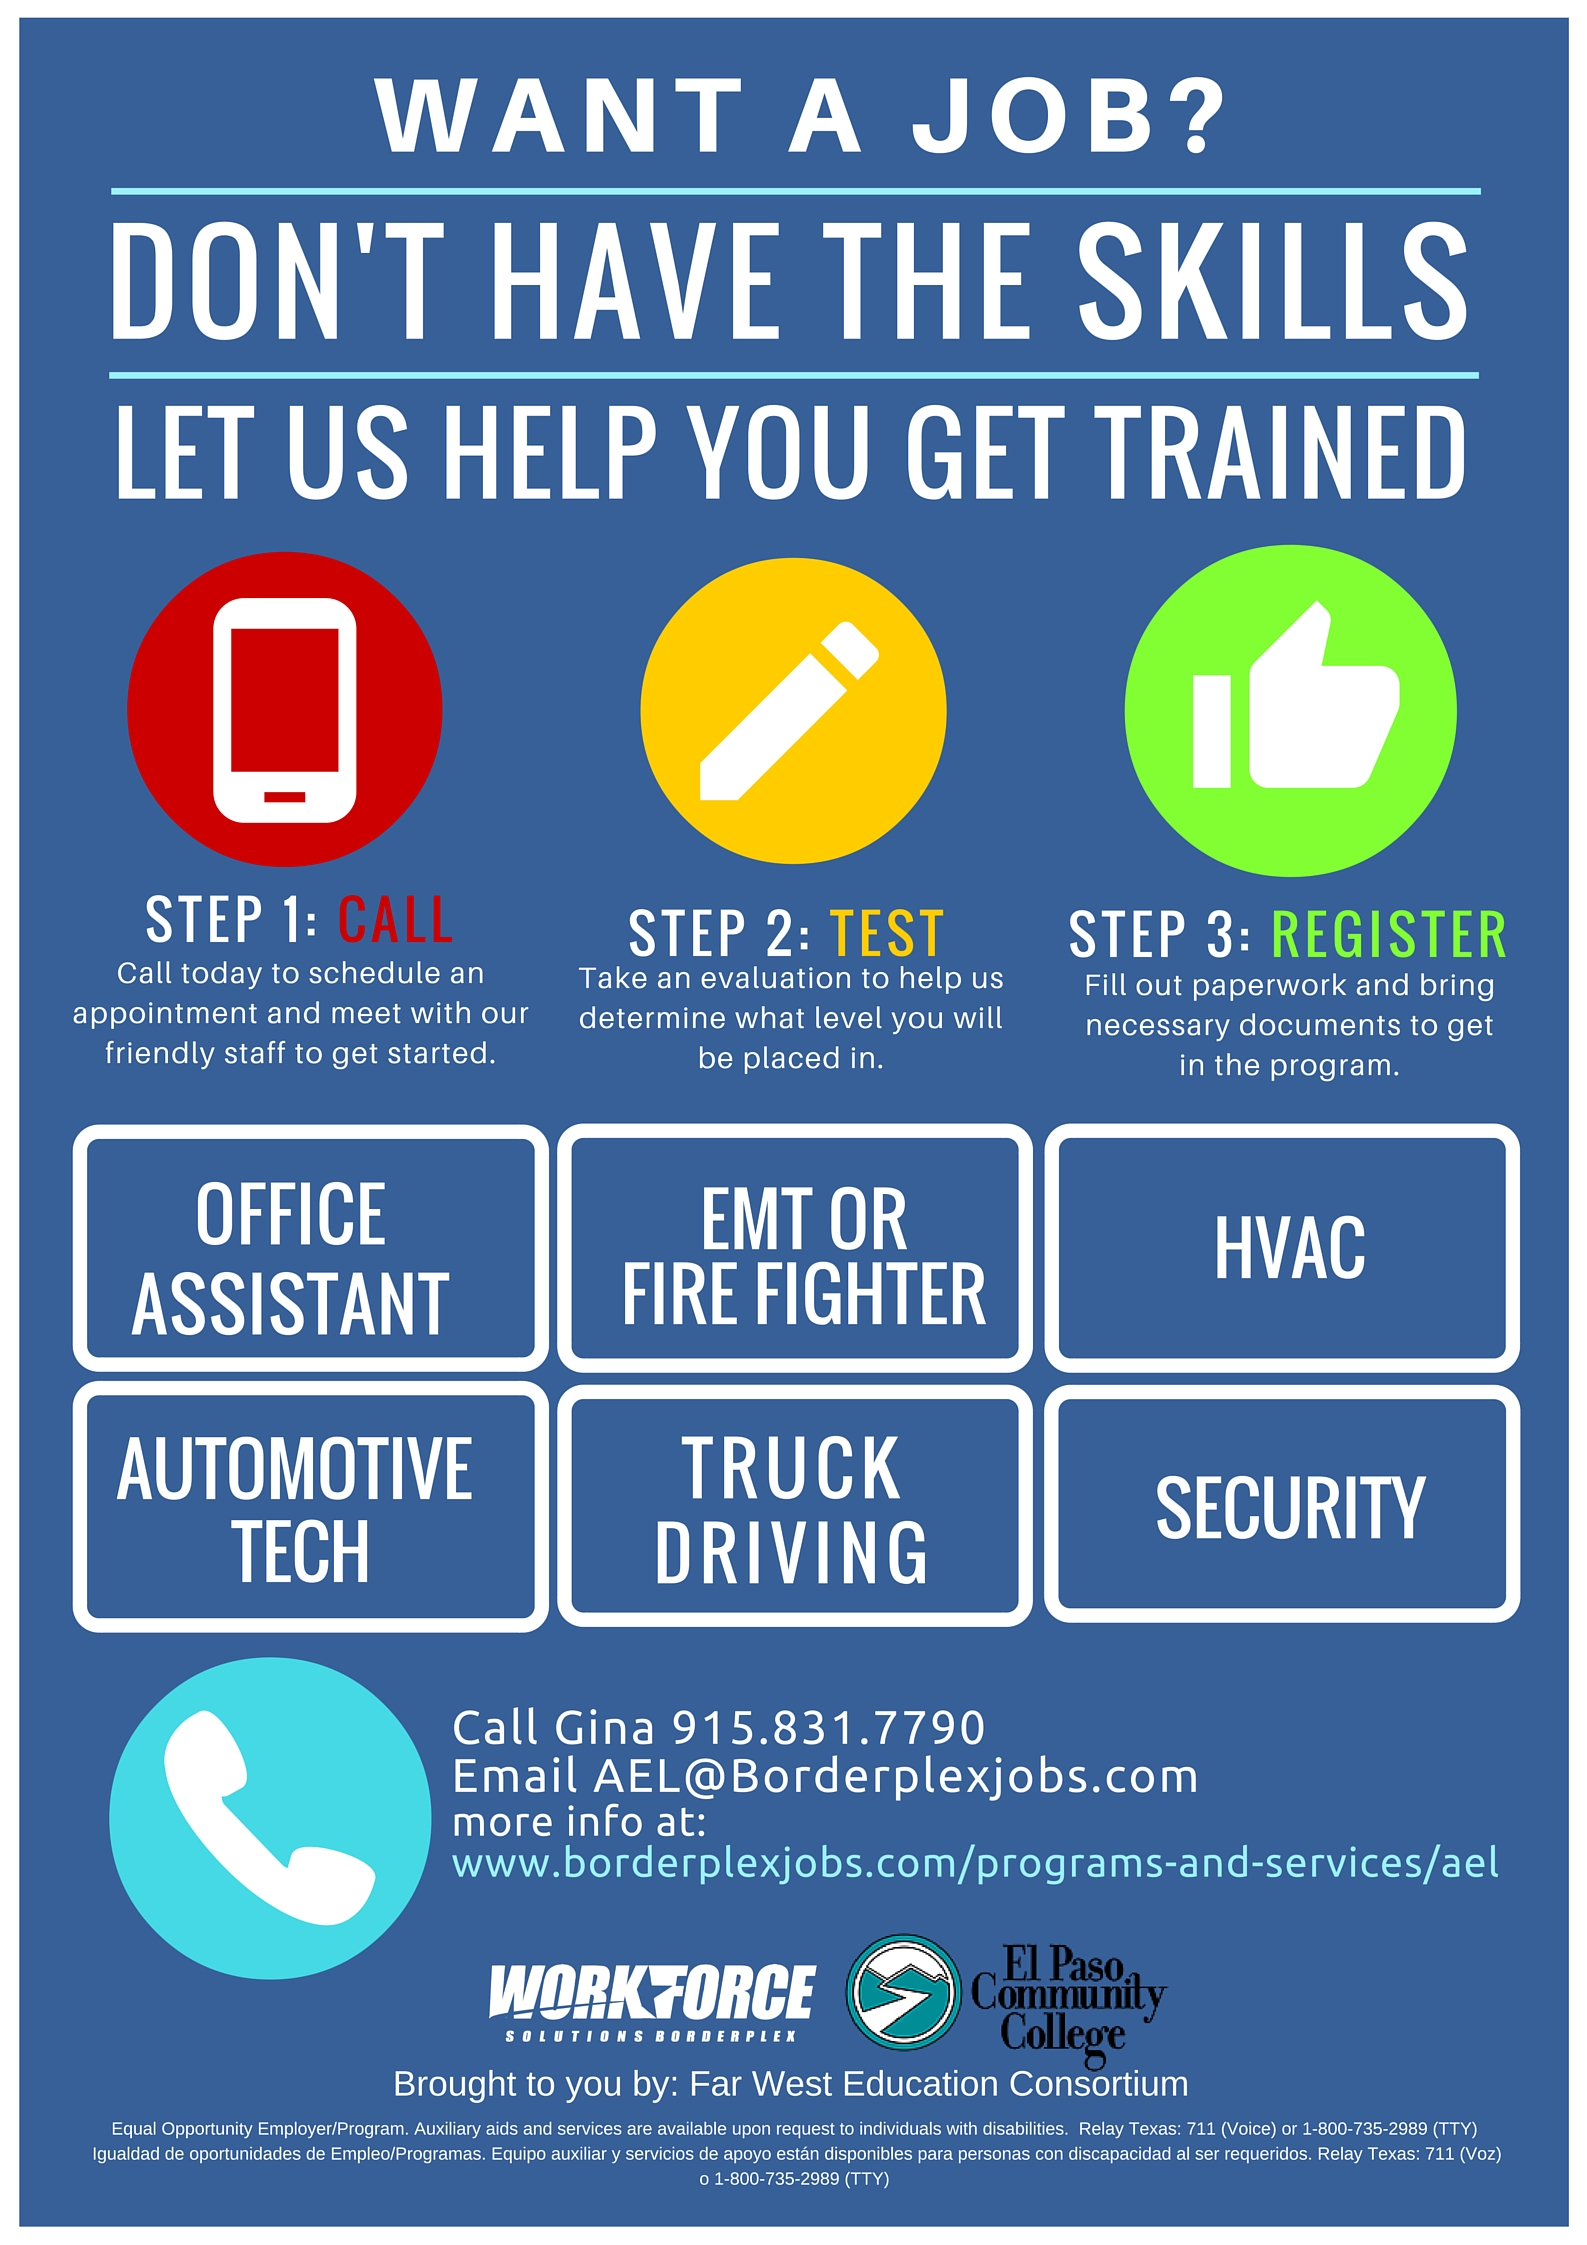 How do you contact Workforce Solutions in Texas?